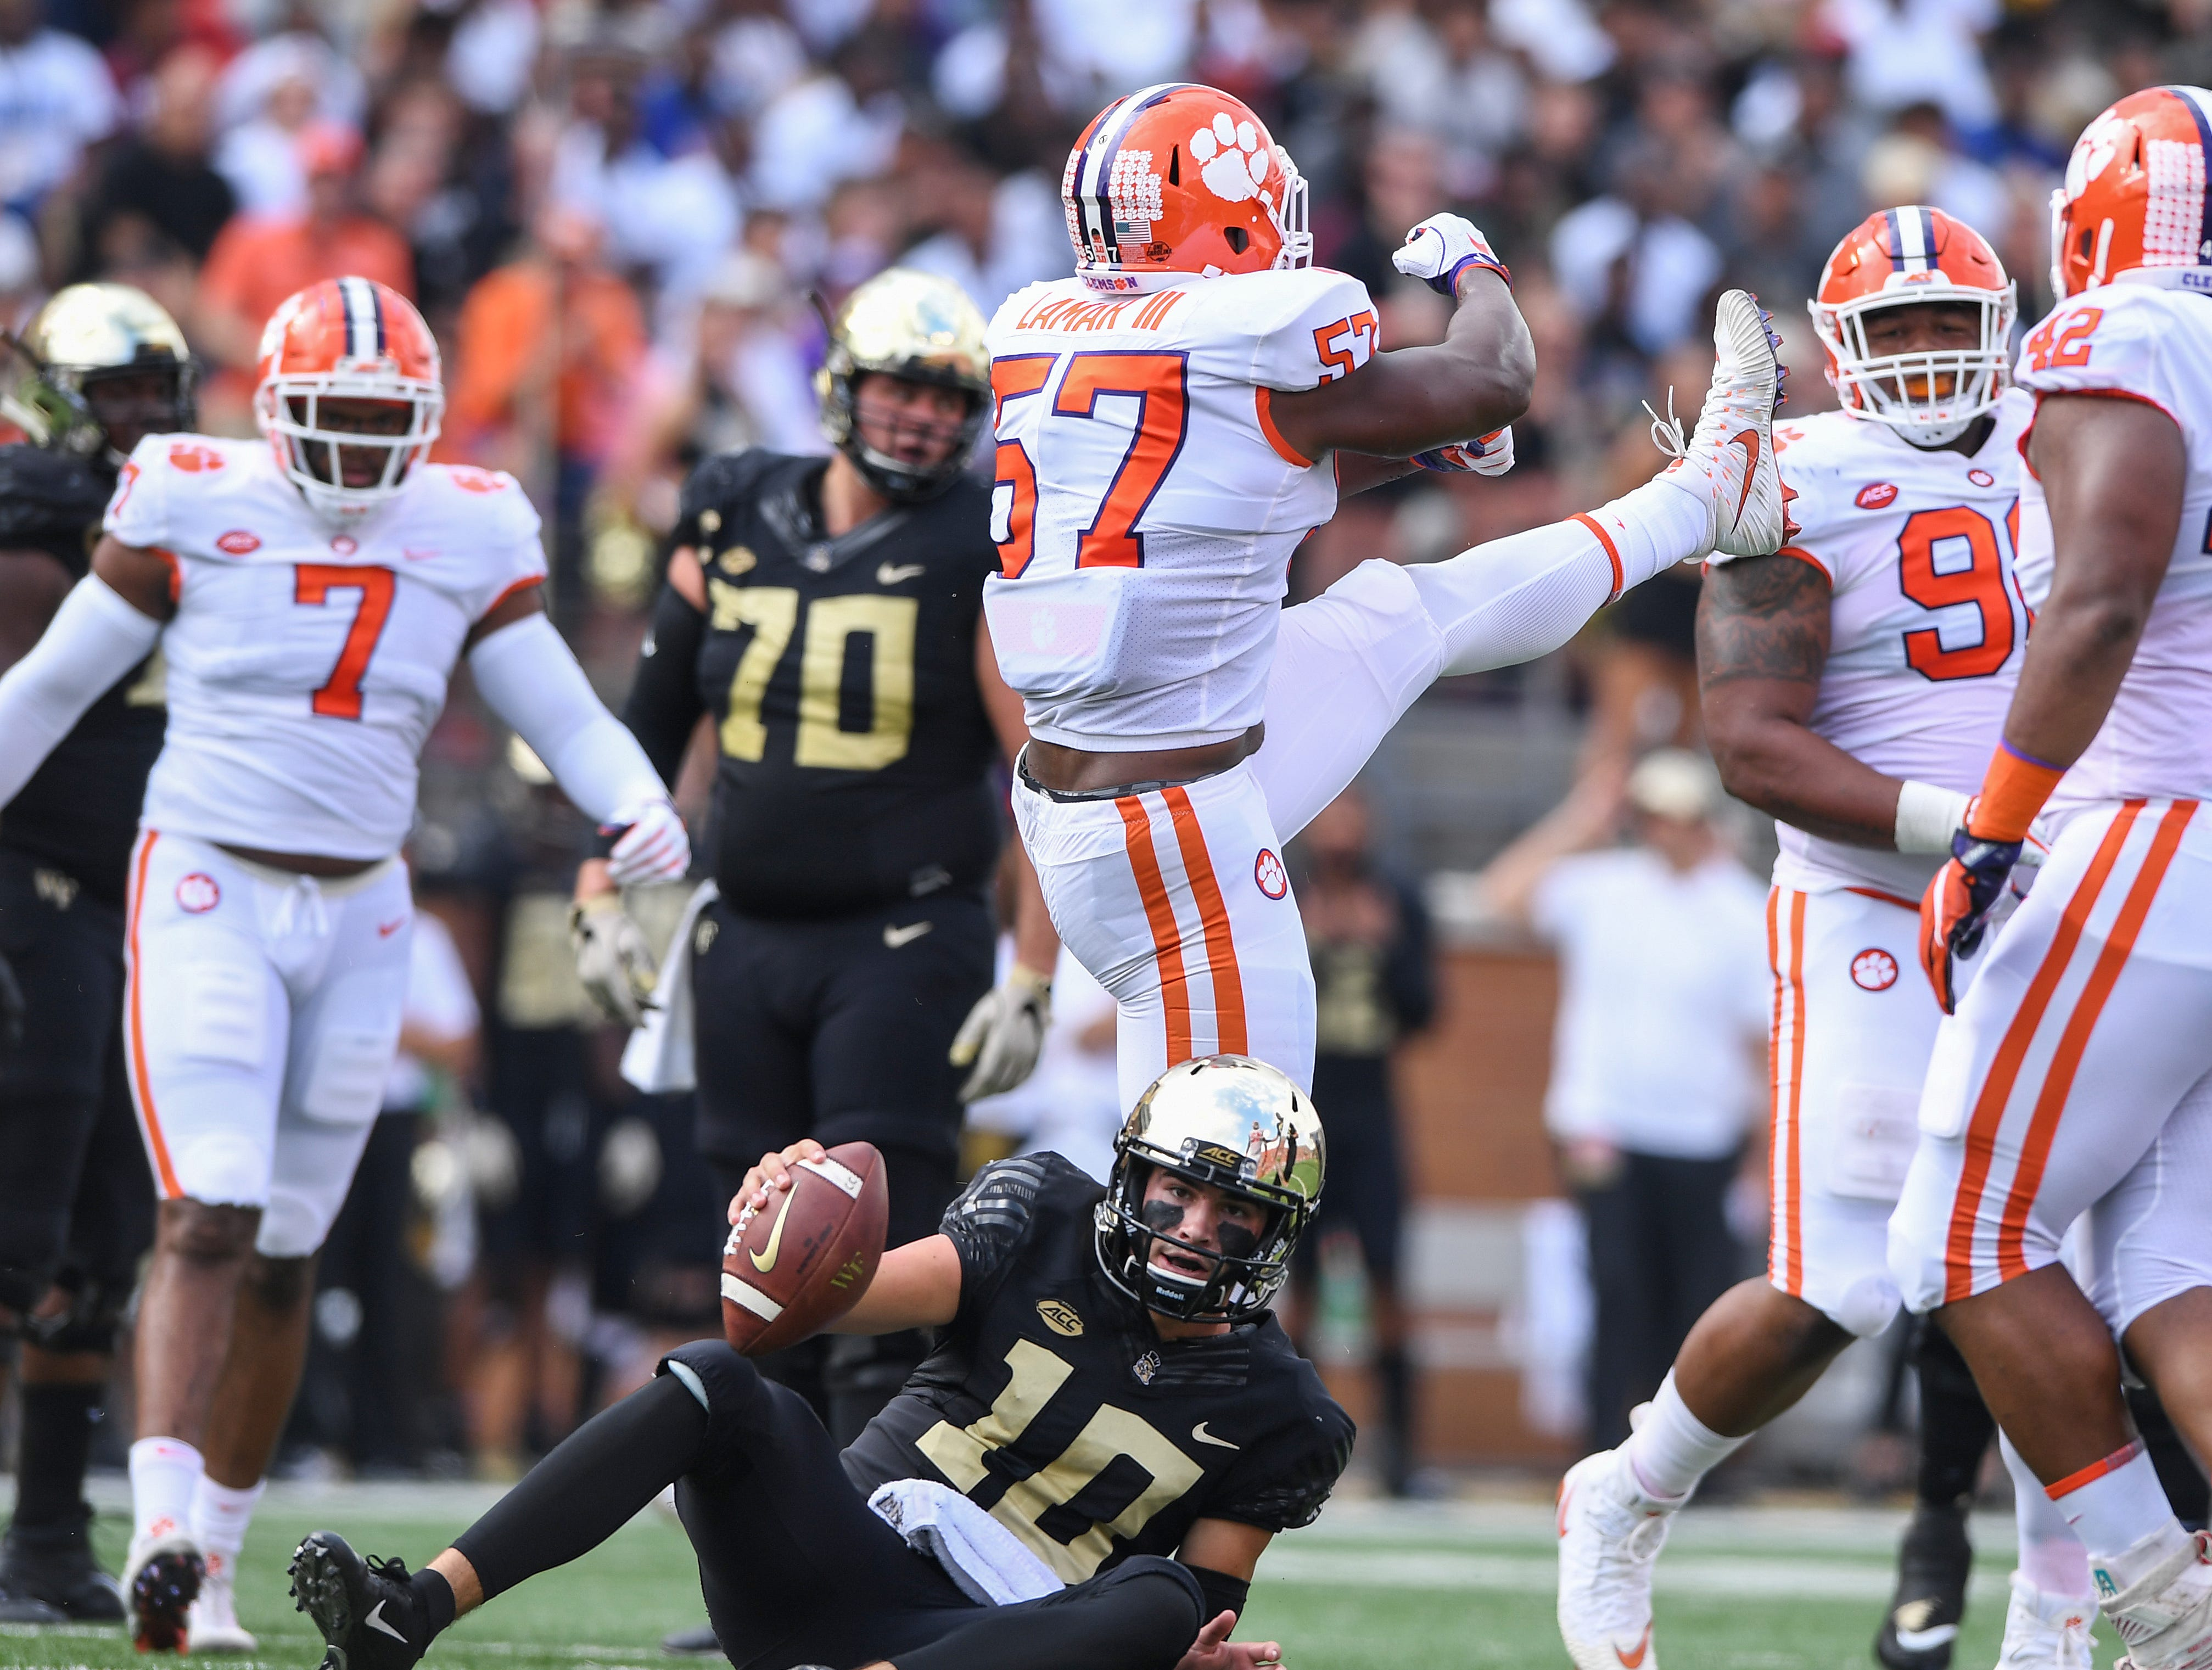 Clemson linebacker Tre Lamar (57) celebrates after sacking Wake Forest quarterback Sam Hartman (10) during the 1st quarter at BB&T Field in Winston Salem, N.C. Saturday, October 6, 2018.